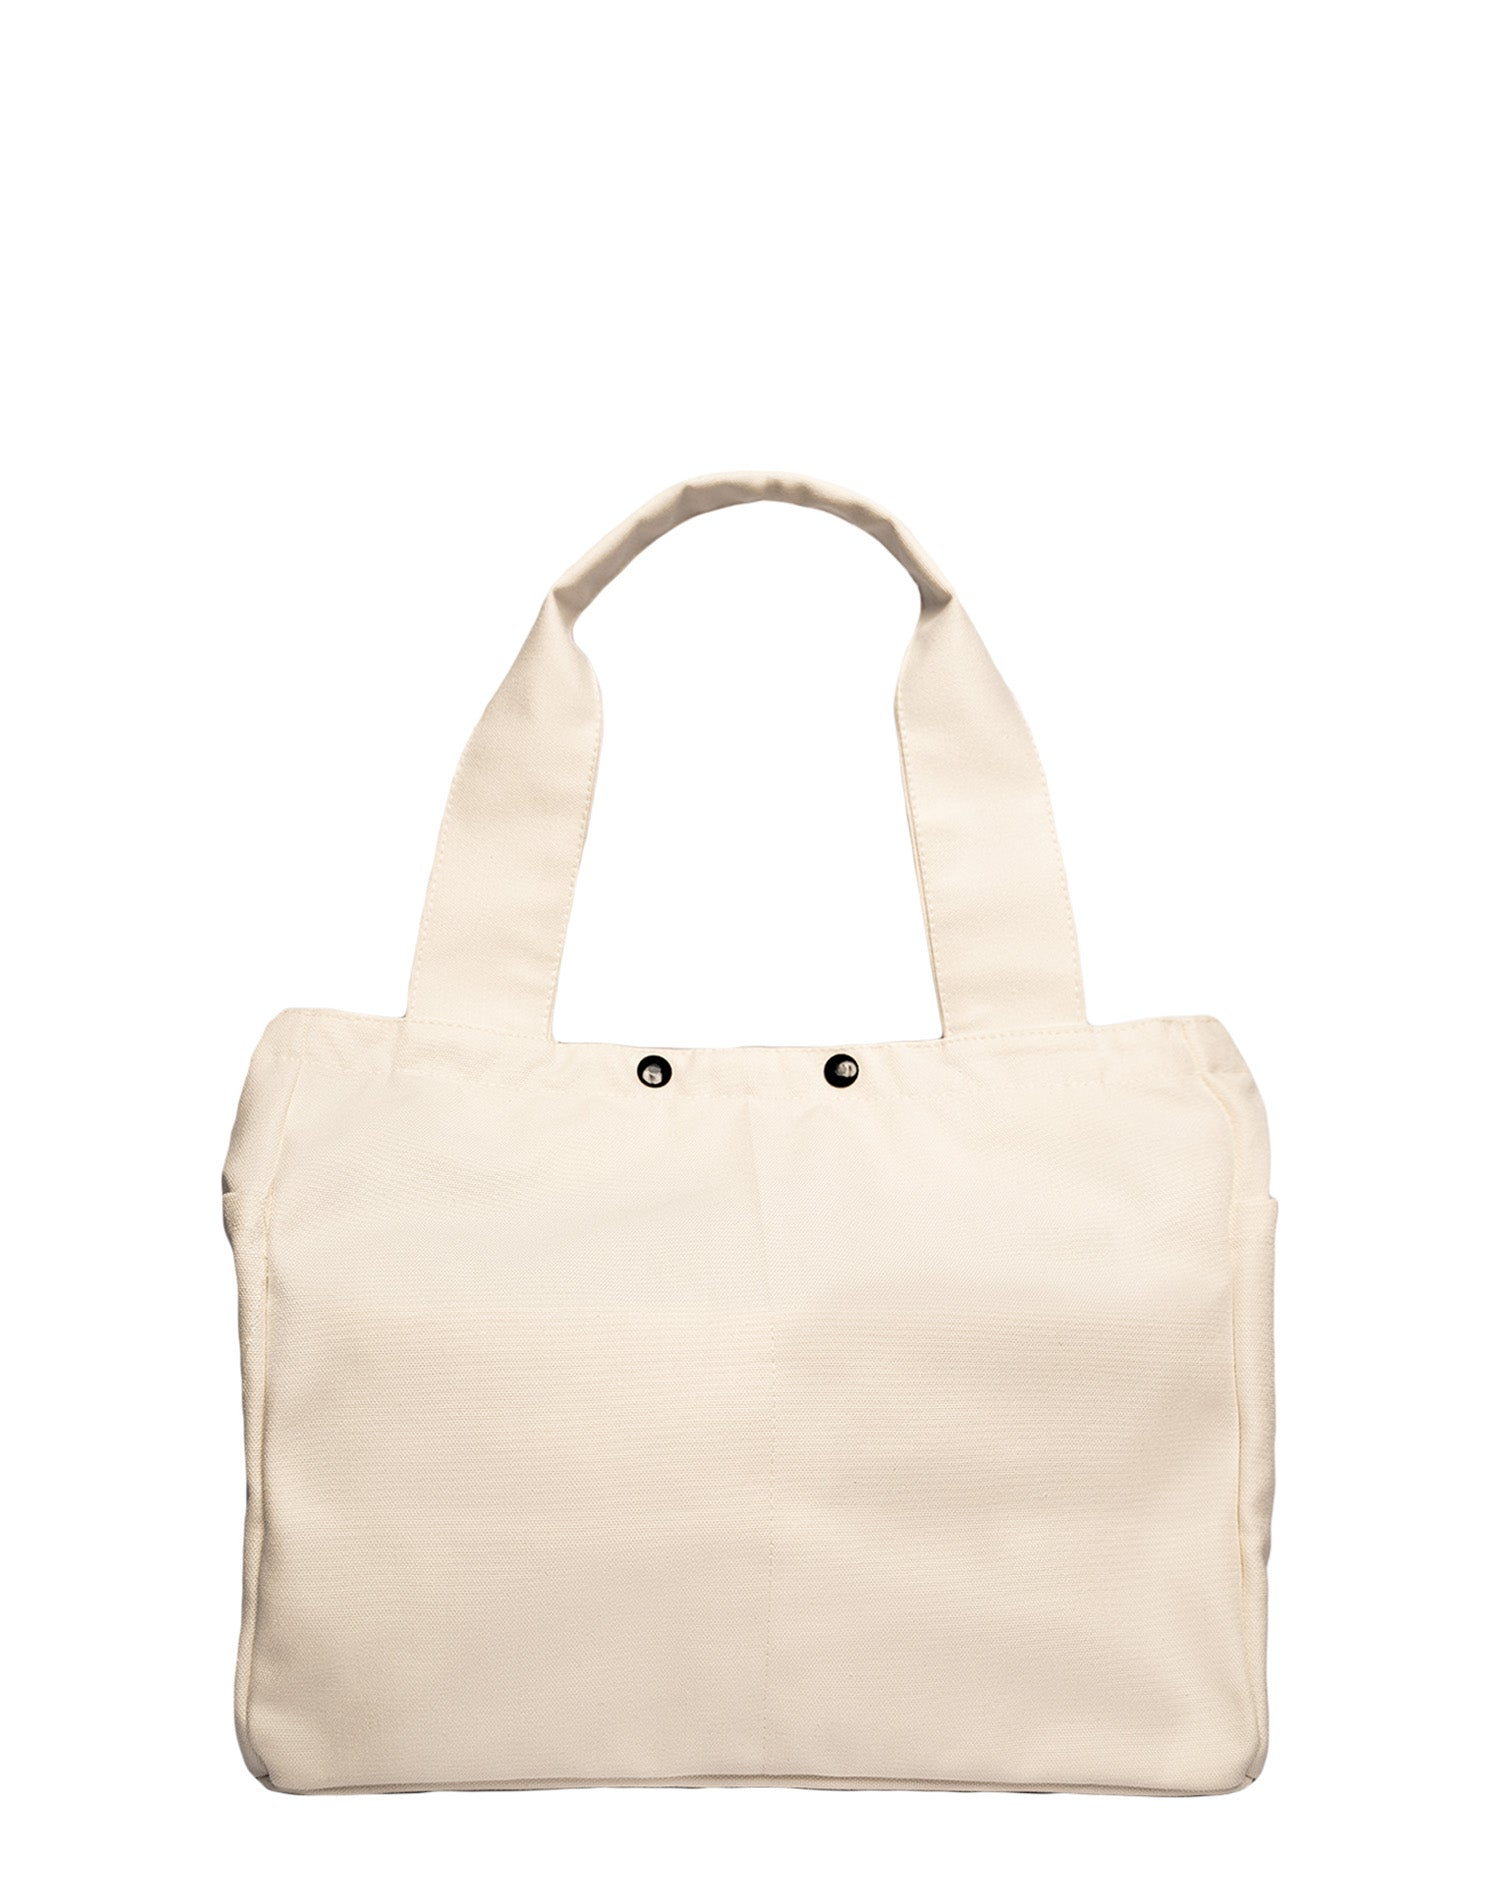 White Square Canvas Tote Bag.白色方形帆布側背袋